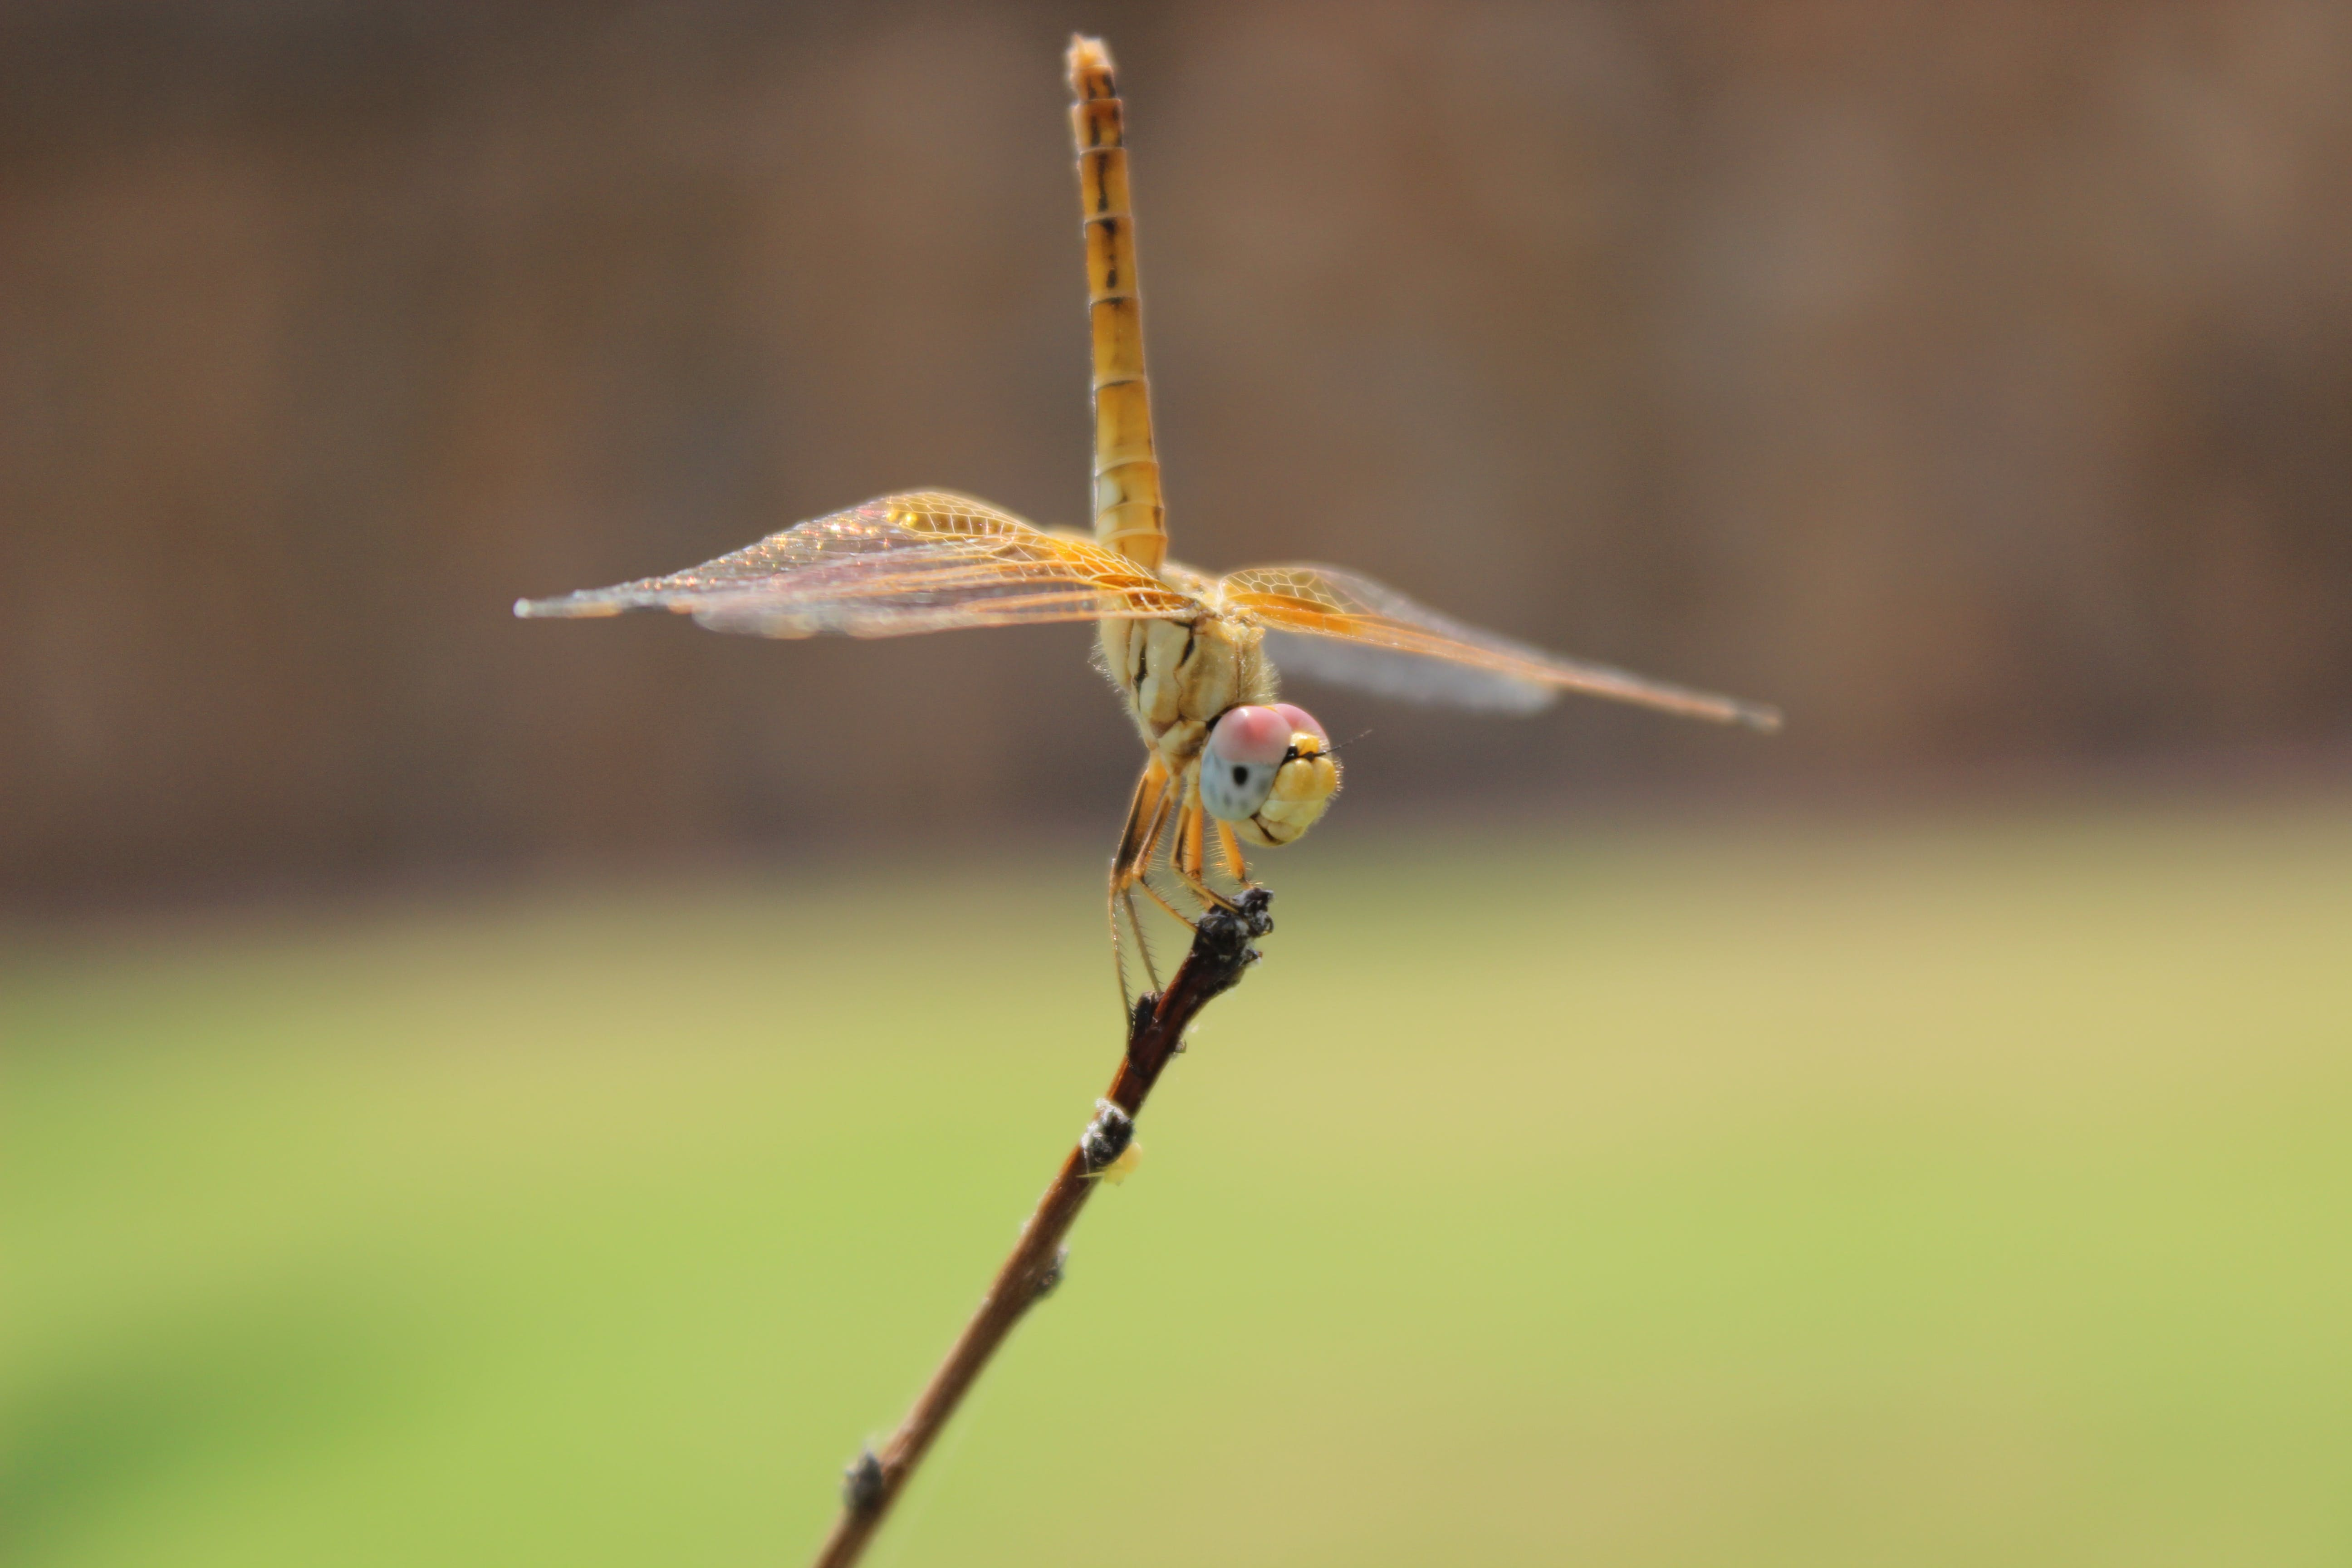 Close-up Photography of Yellow Dragonfly Perching on Brown Twig